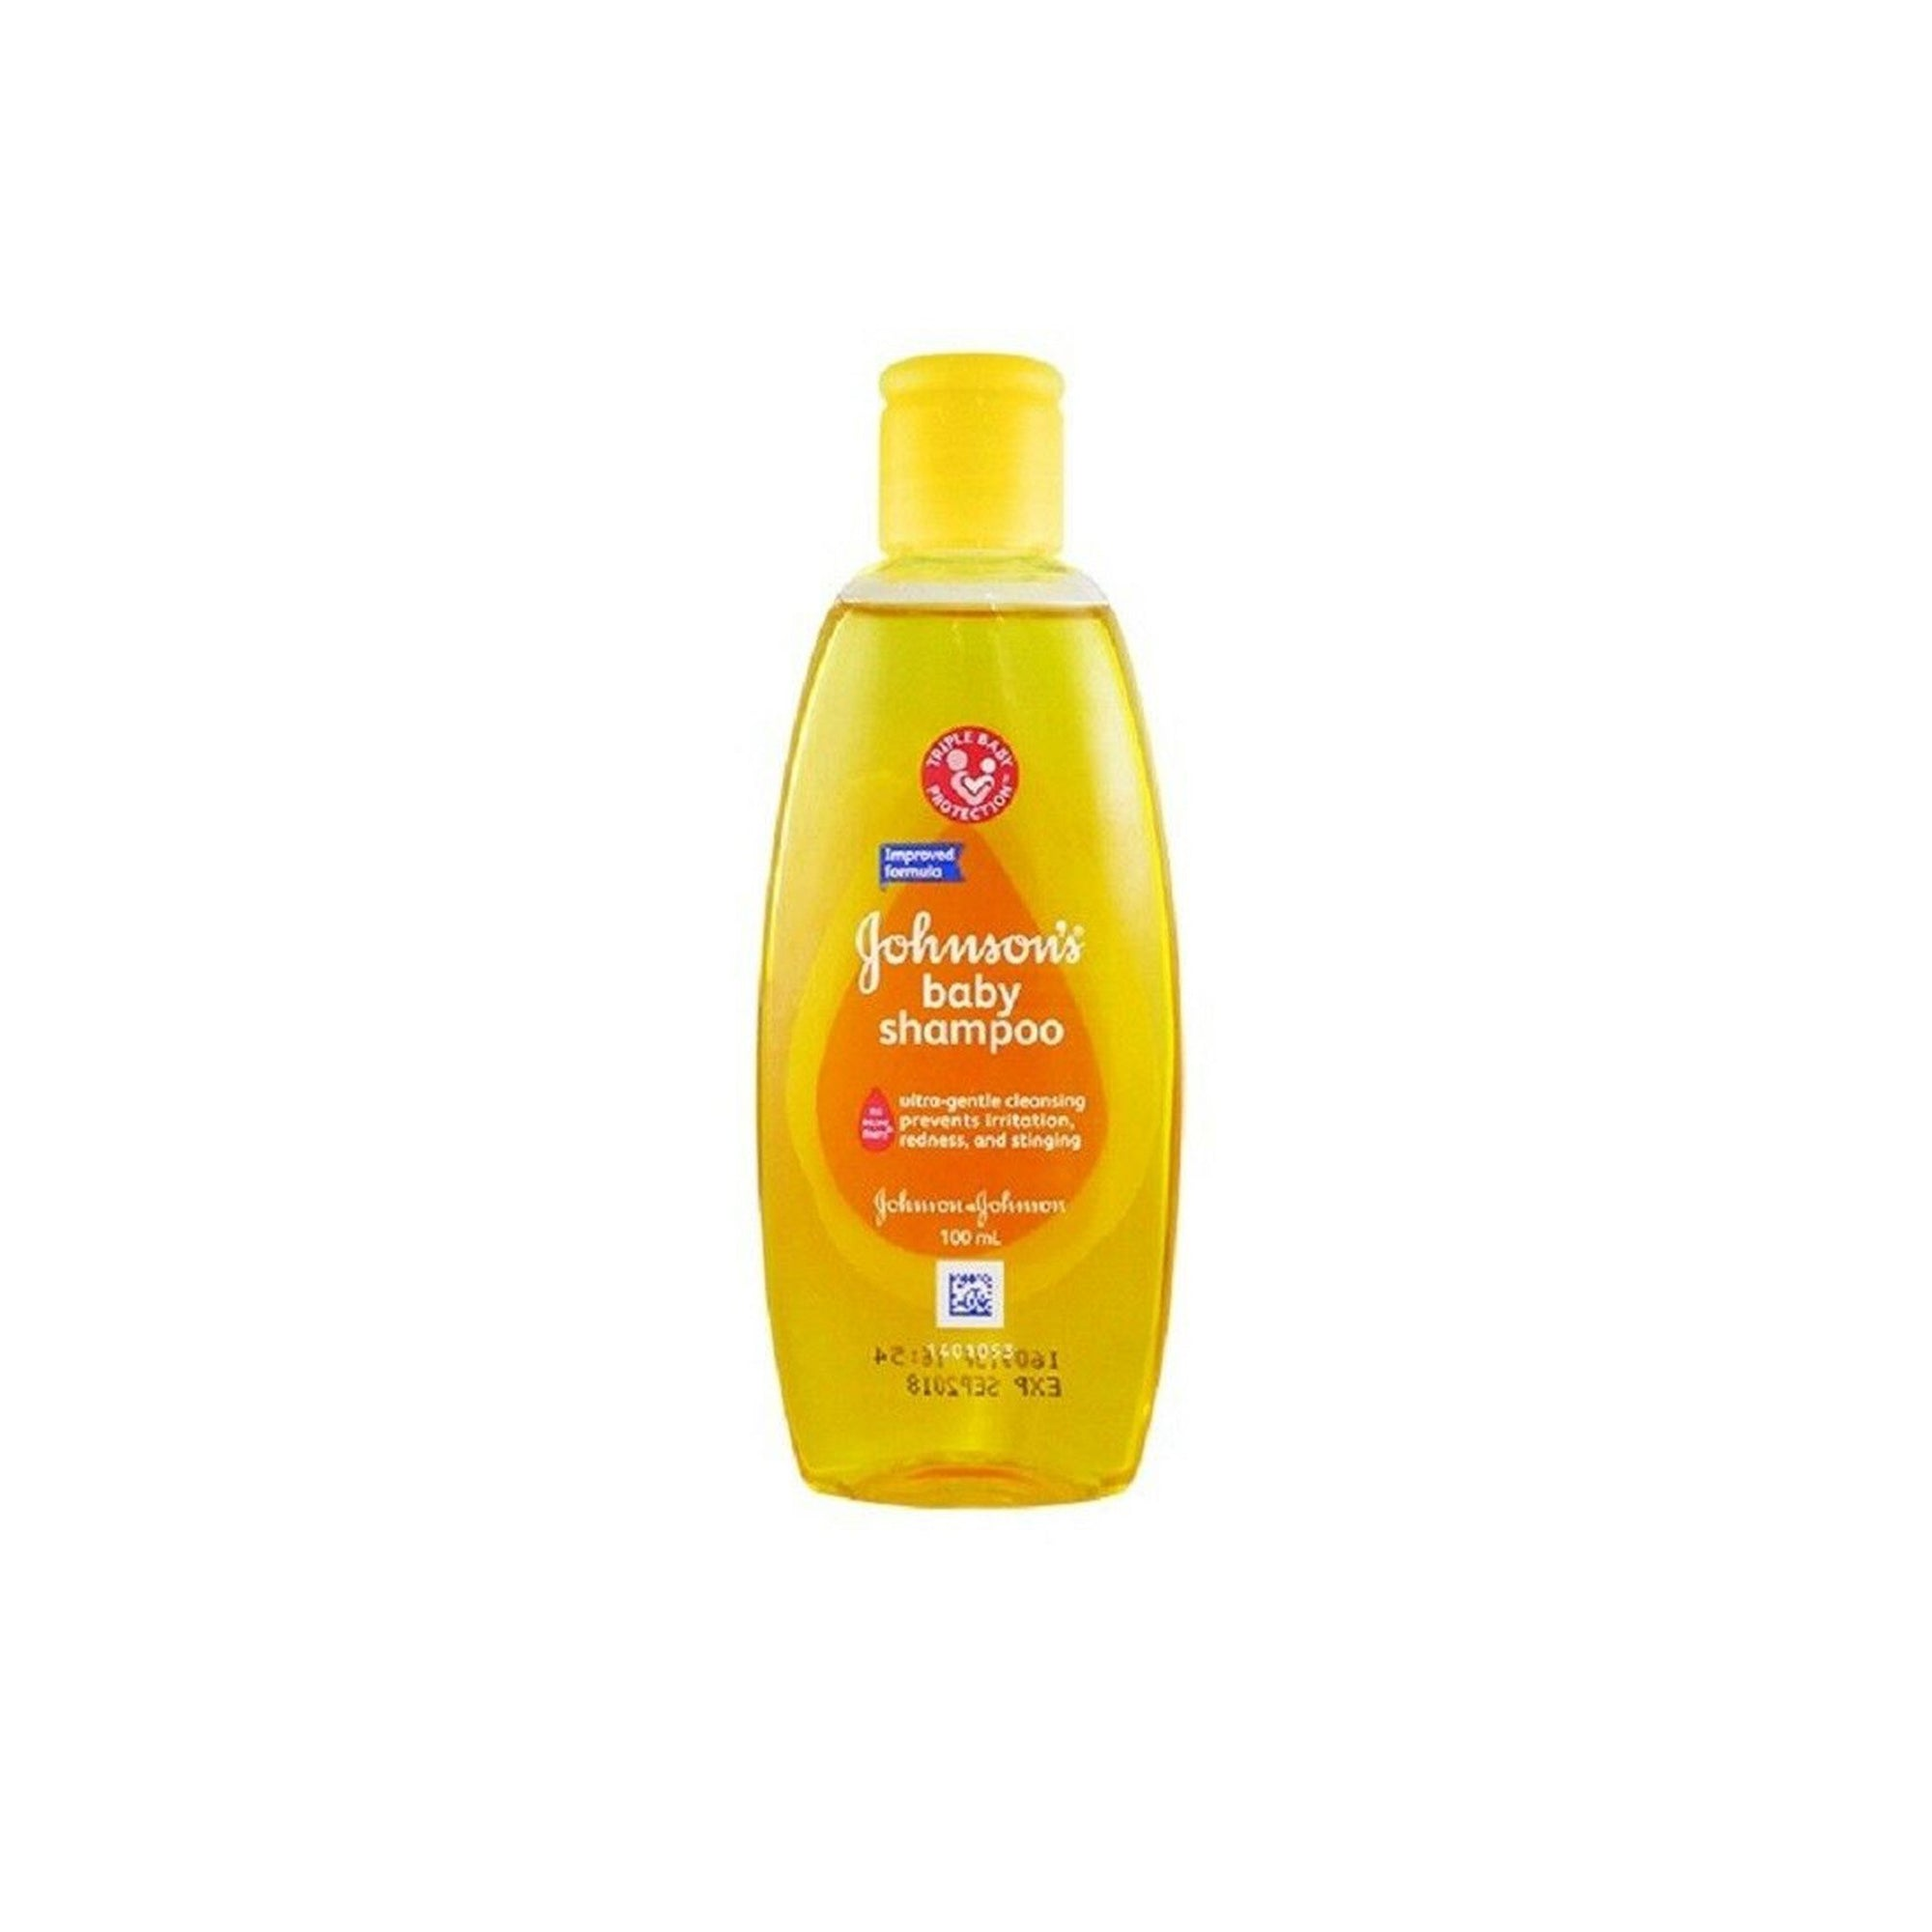 Johnson's Baby Shampoo 50ml